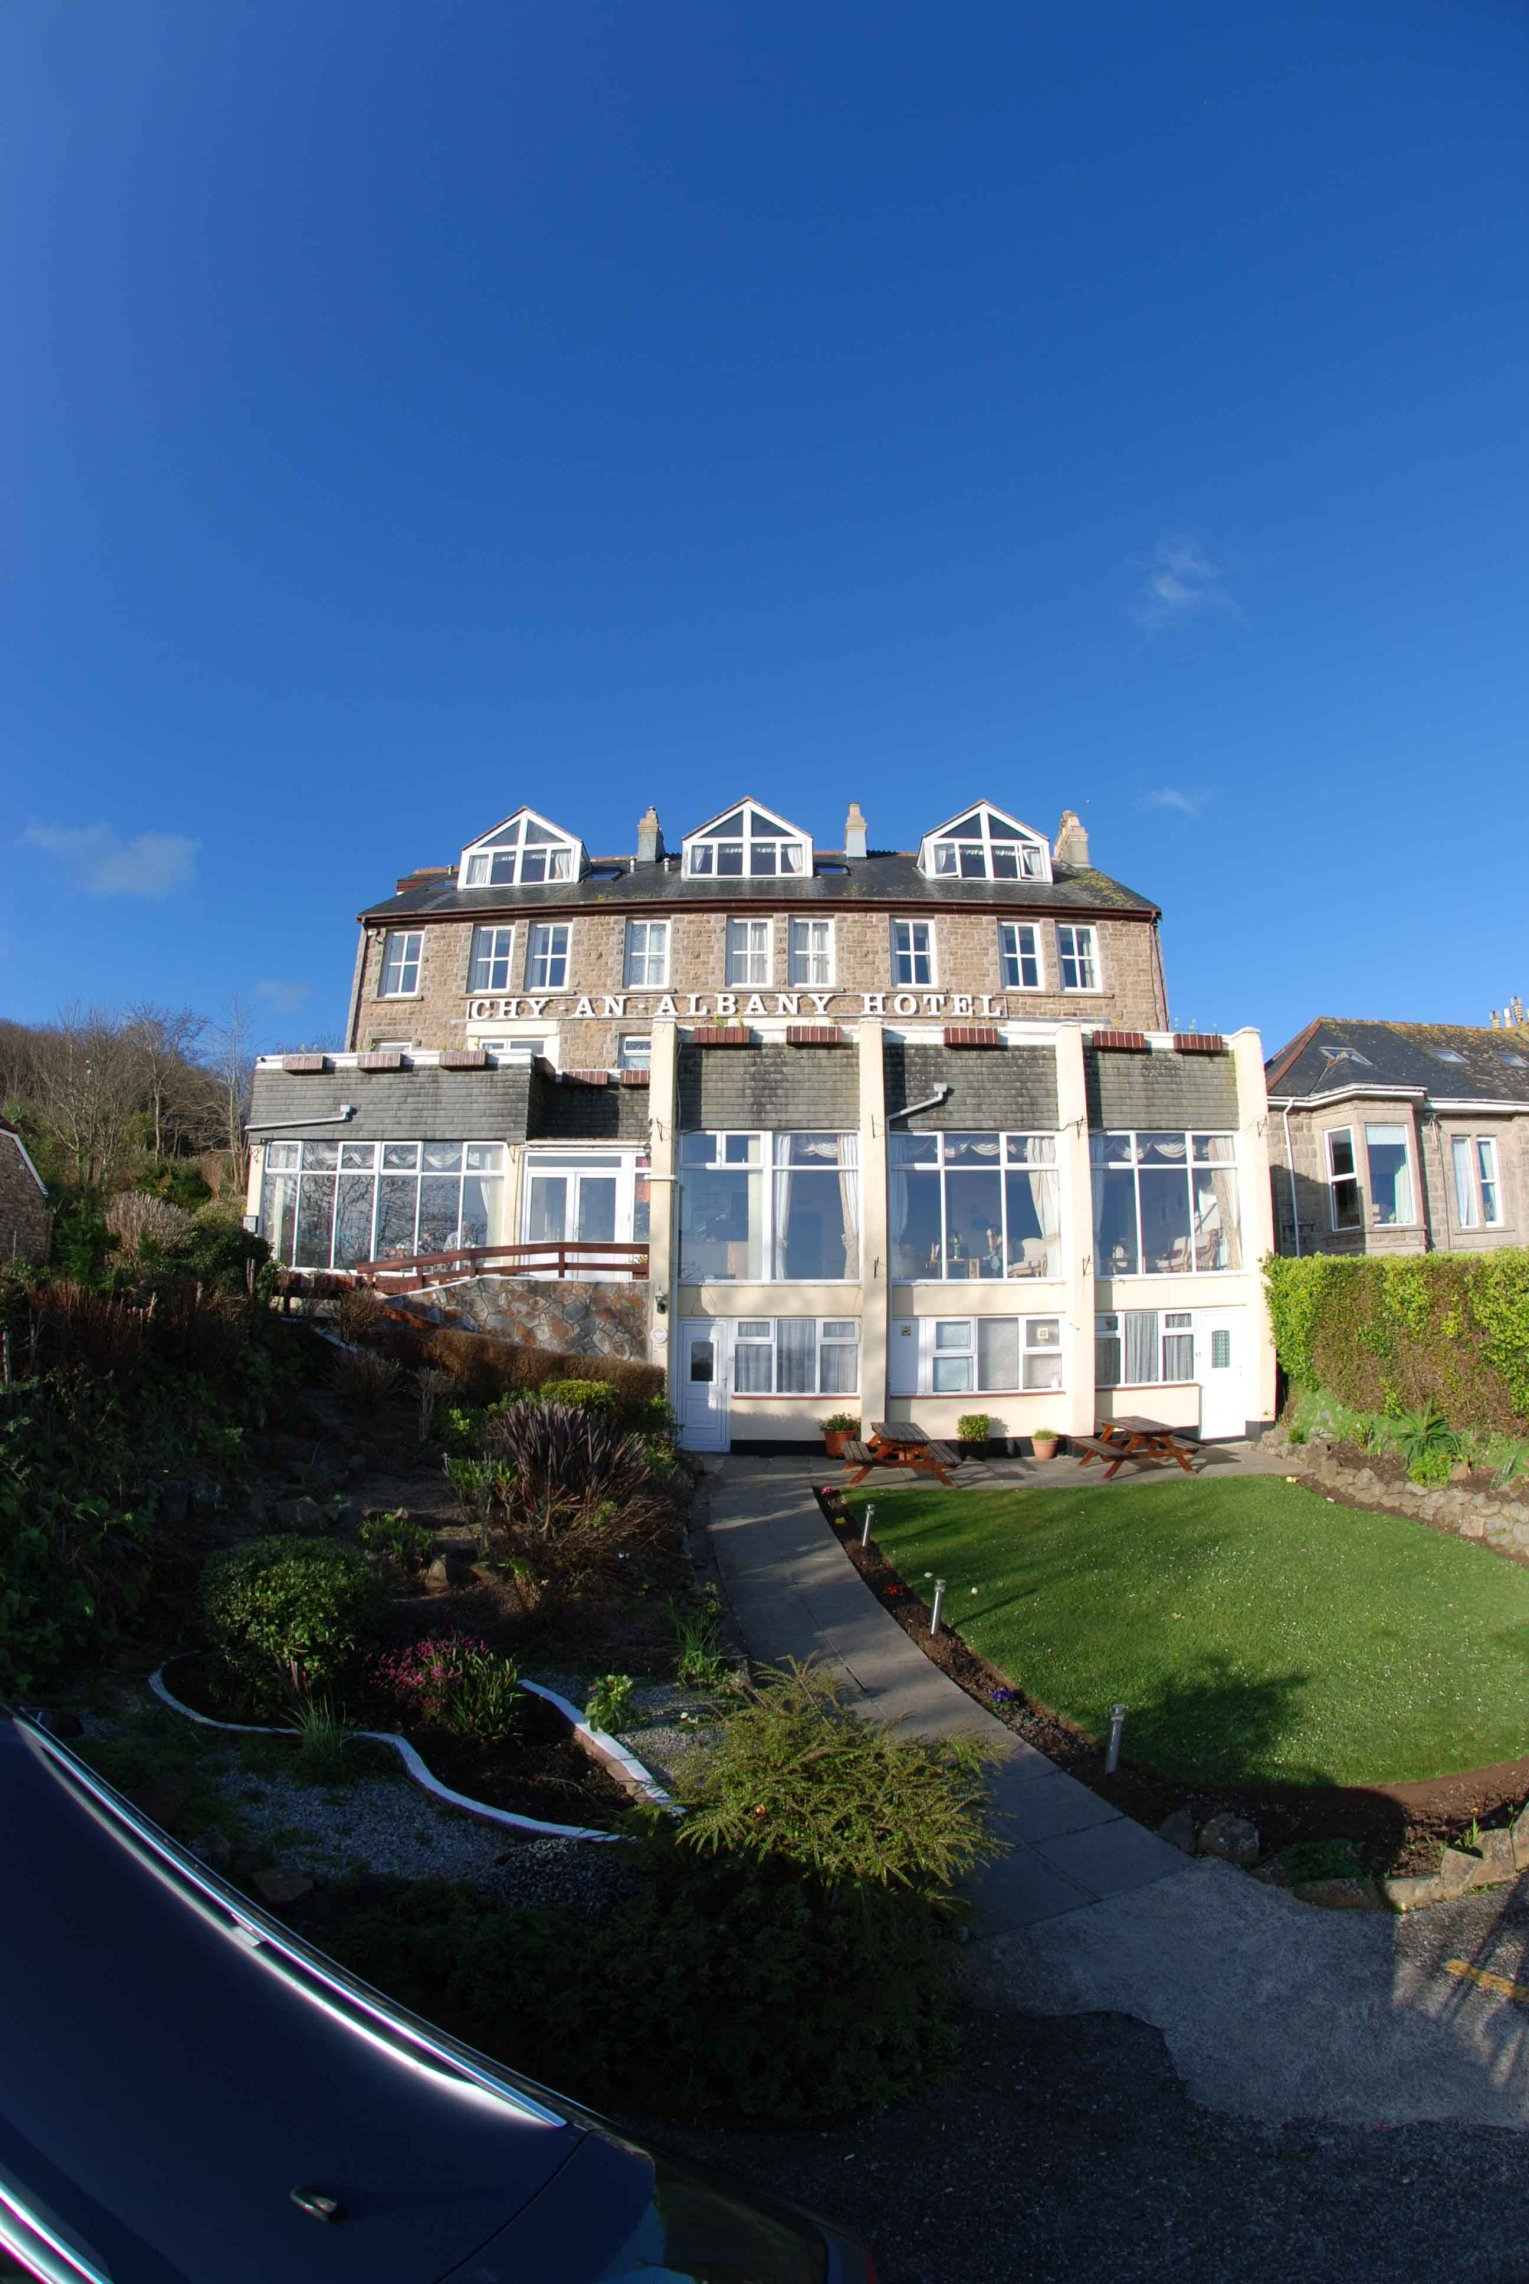 St ives hotels cheap hotel bookings for 3 albany terrace st ives